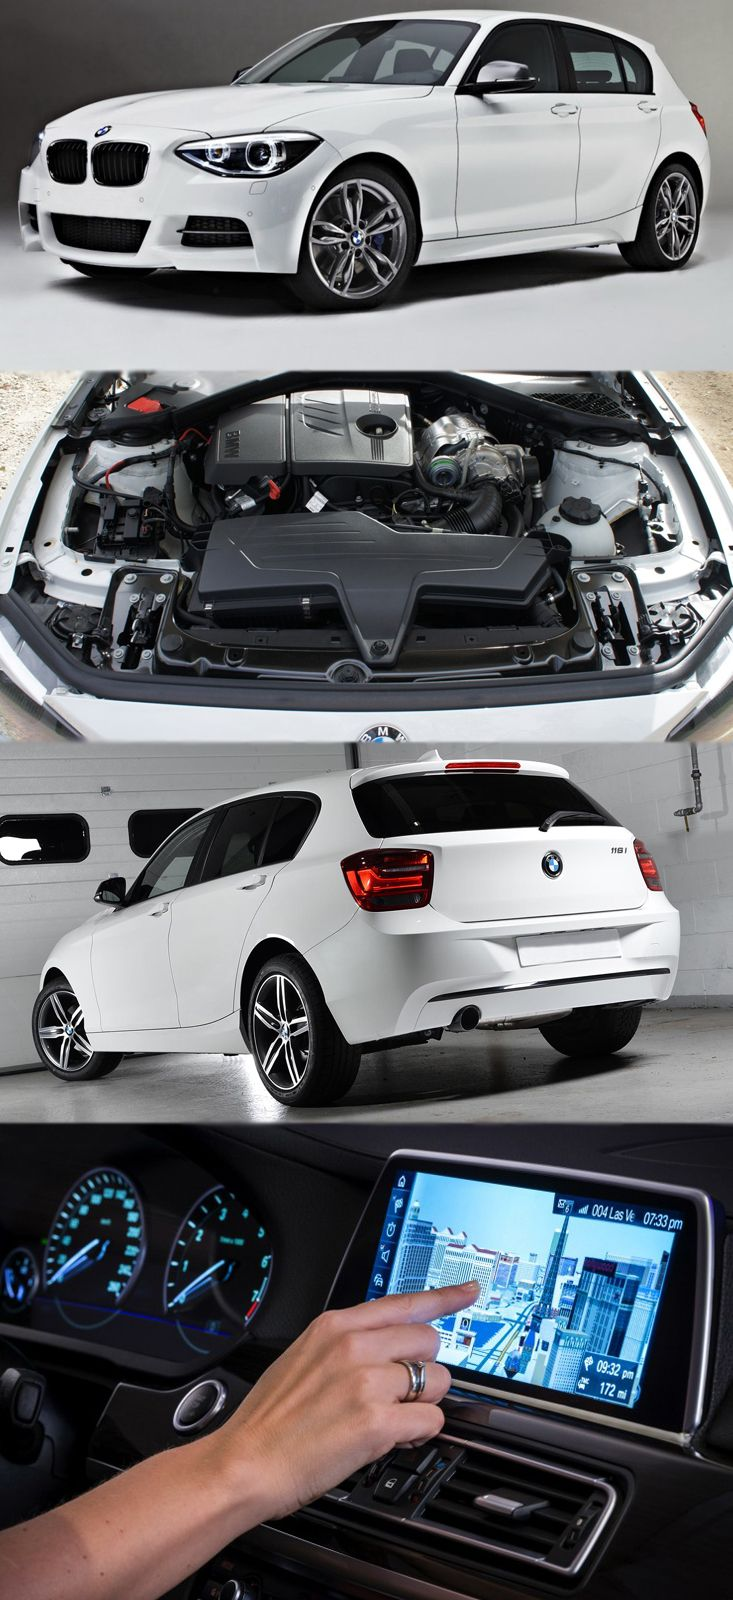 BMW 116i Gets Midlife Tune-Ups Click here for more info: http://www.bmwengineandgearboxes.com/the-bmw-116i-engine-handles-a-lot-of-power-superbly/